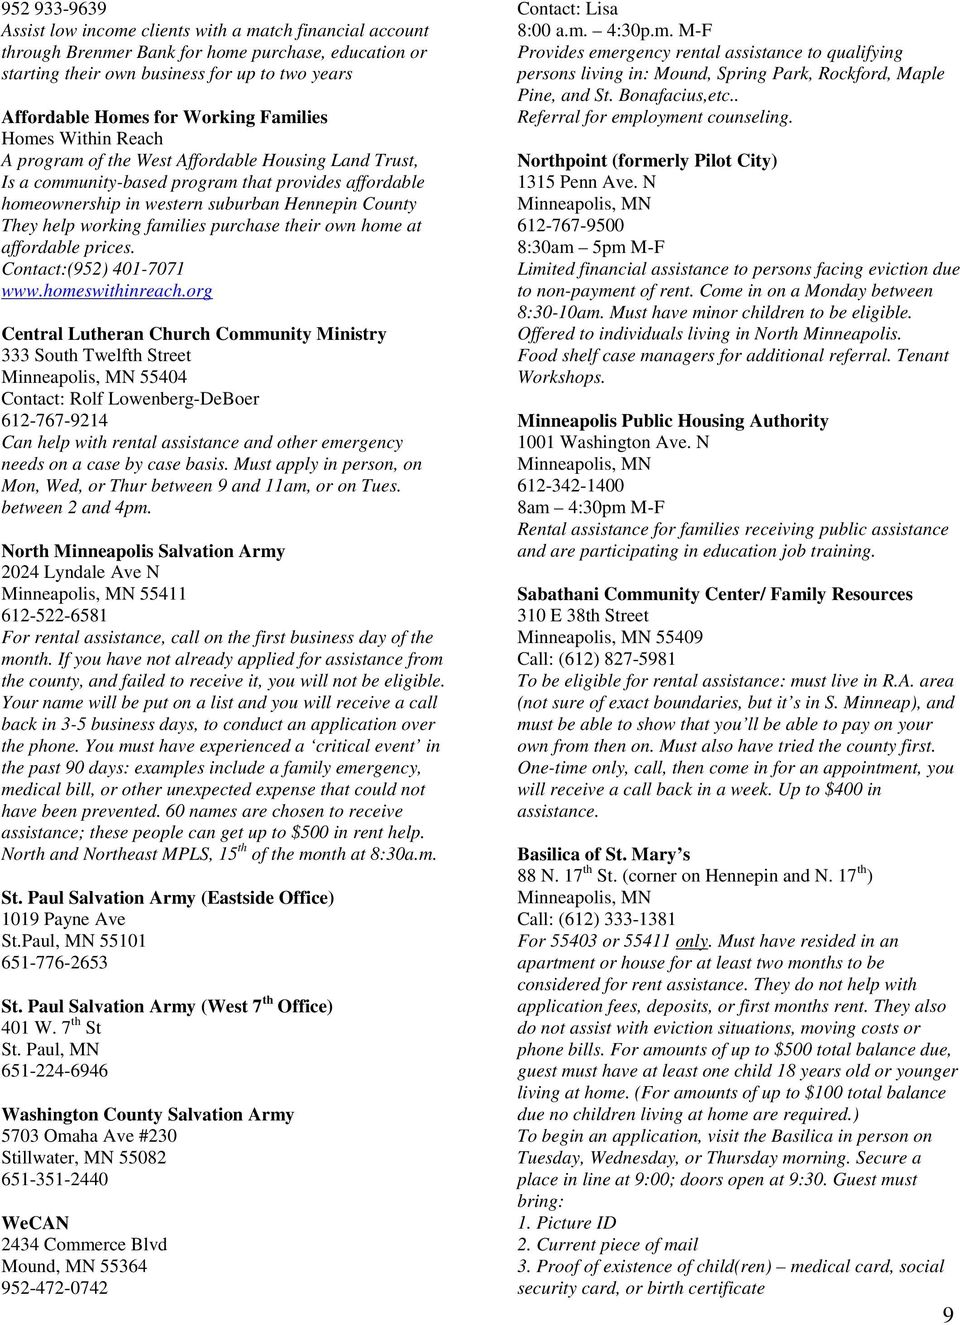 community resources. compiled by: council on crime and justice - pdf